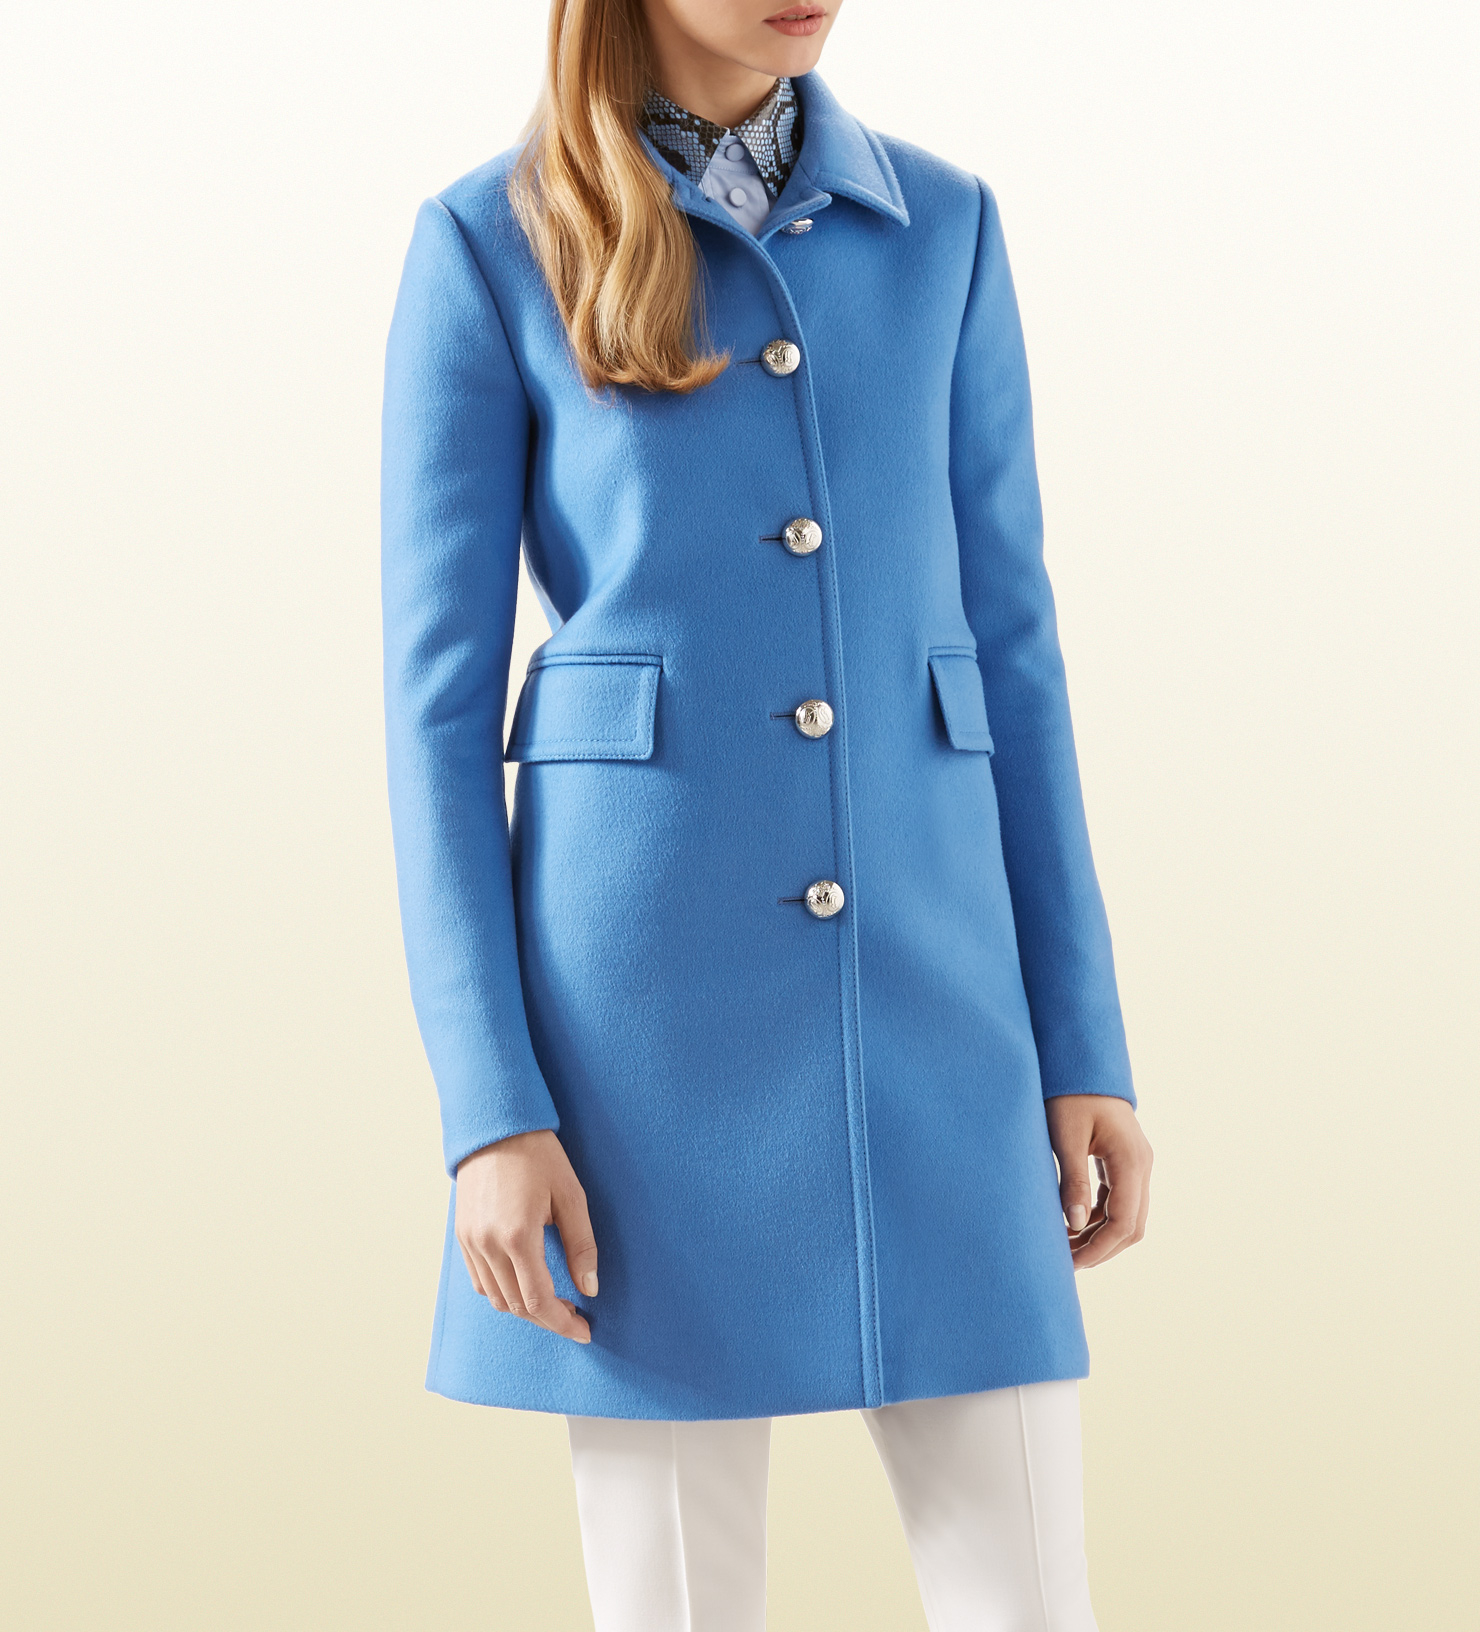 Gucci Blue Wool Coat in Blue | Lyst